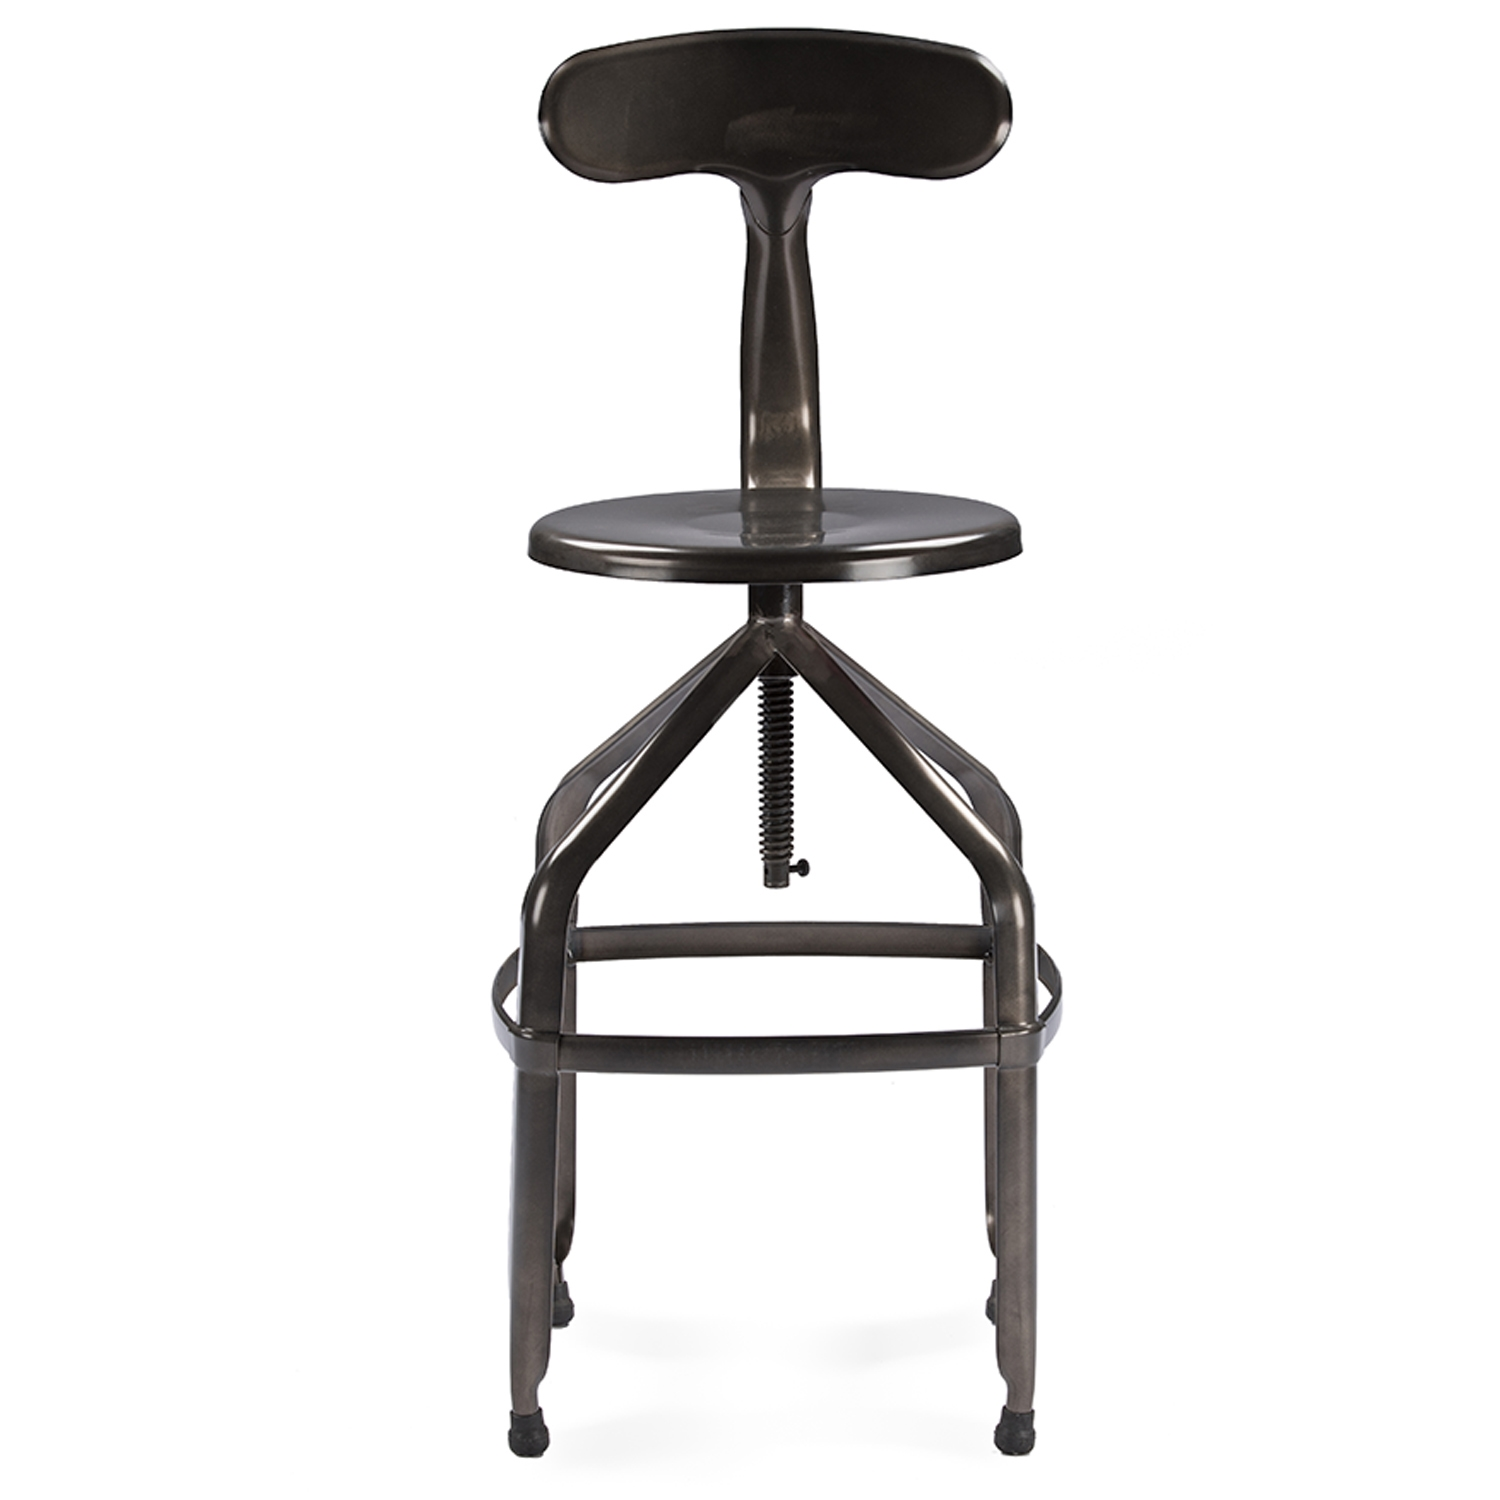 baxton with architect backrest bar gun store m in bs metal s p industrial studio stool